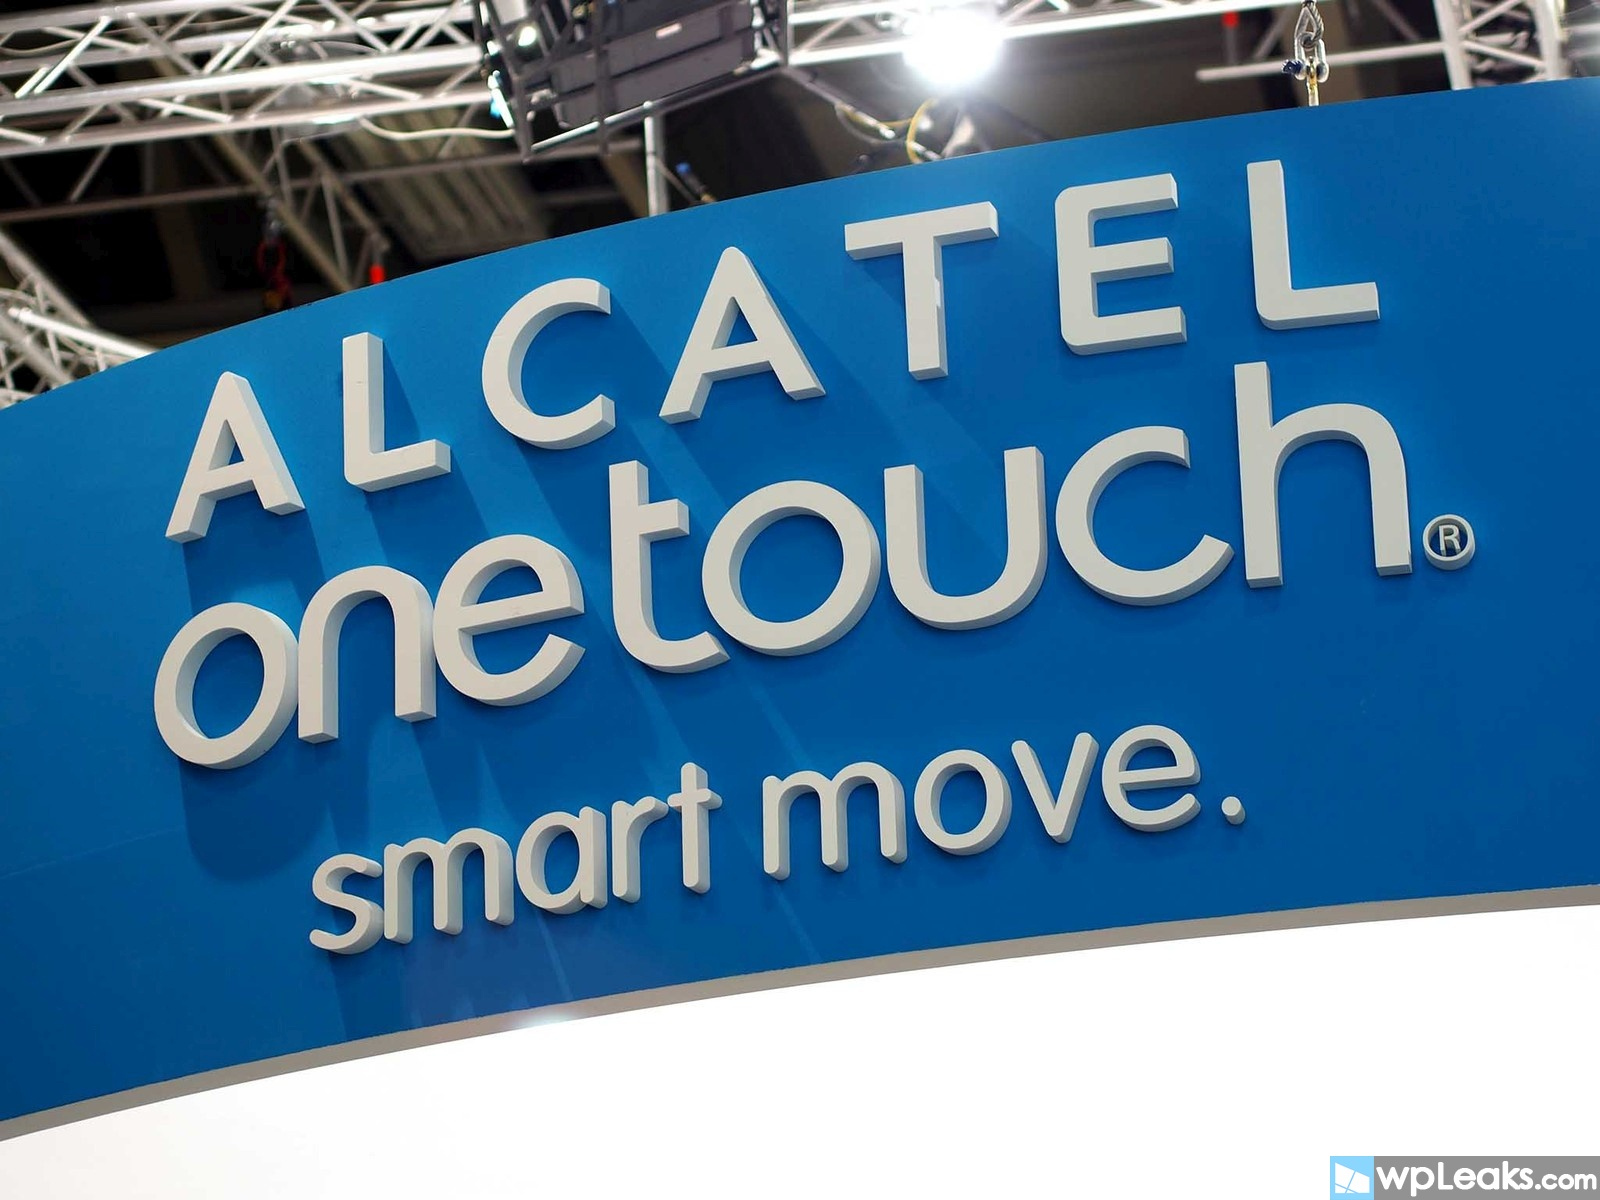 alcatel_onetouch_ifa2014_1